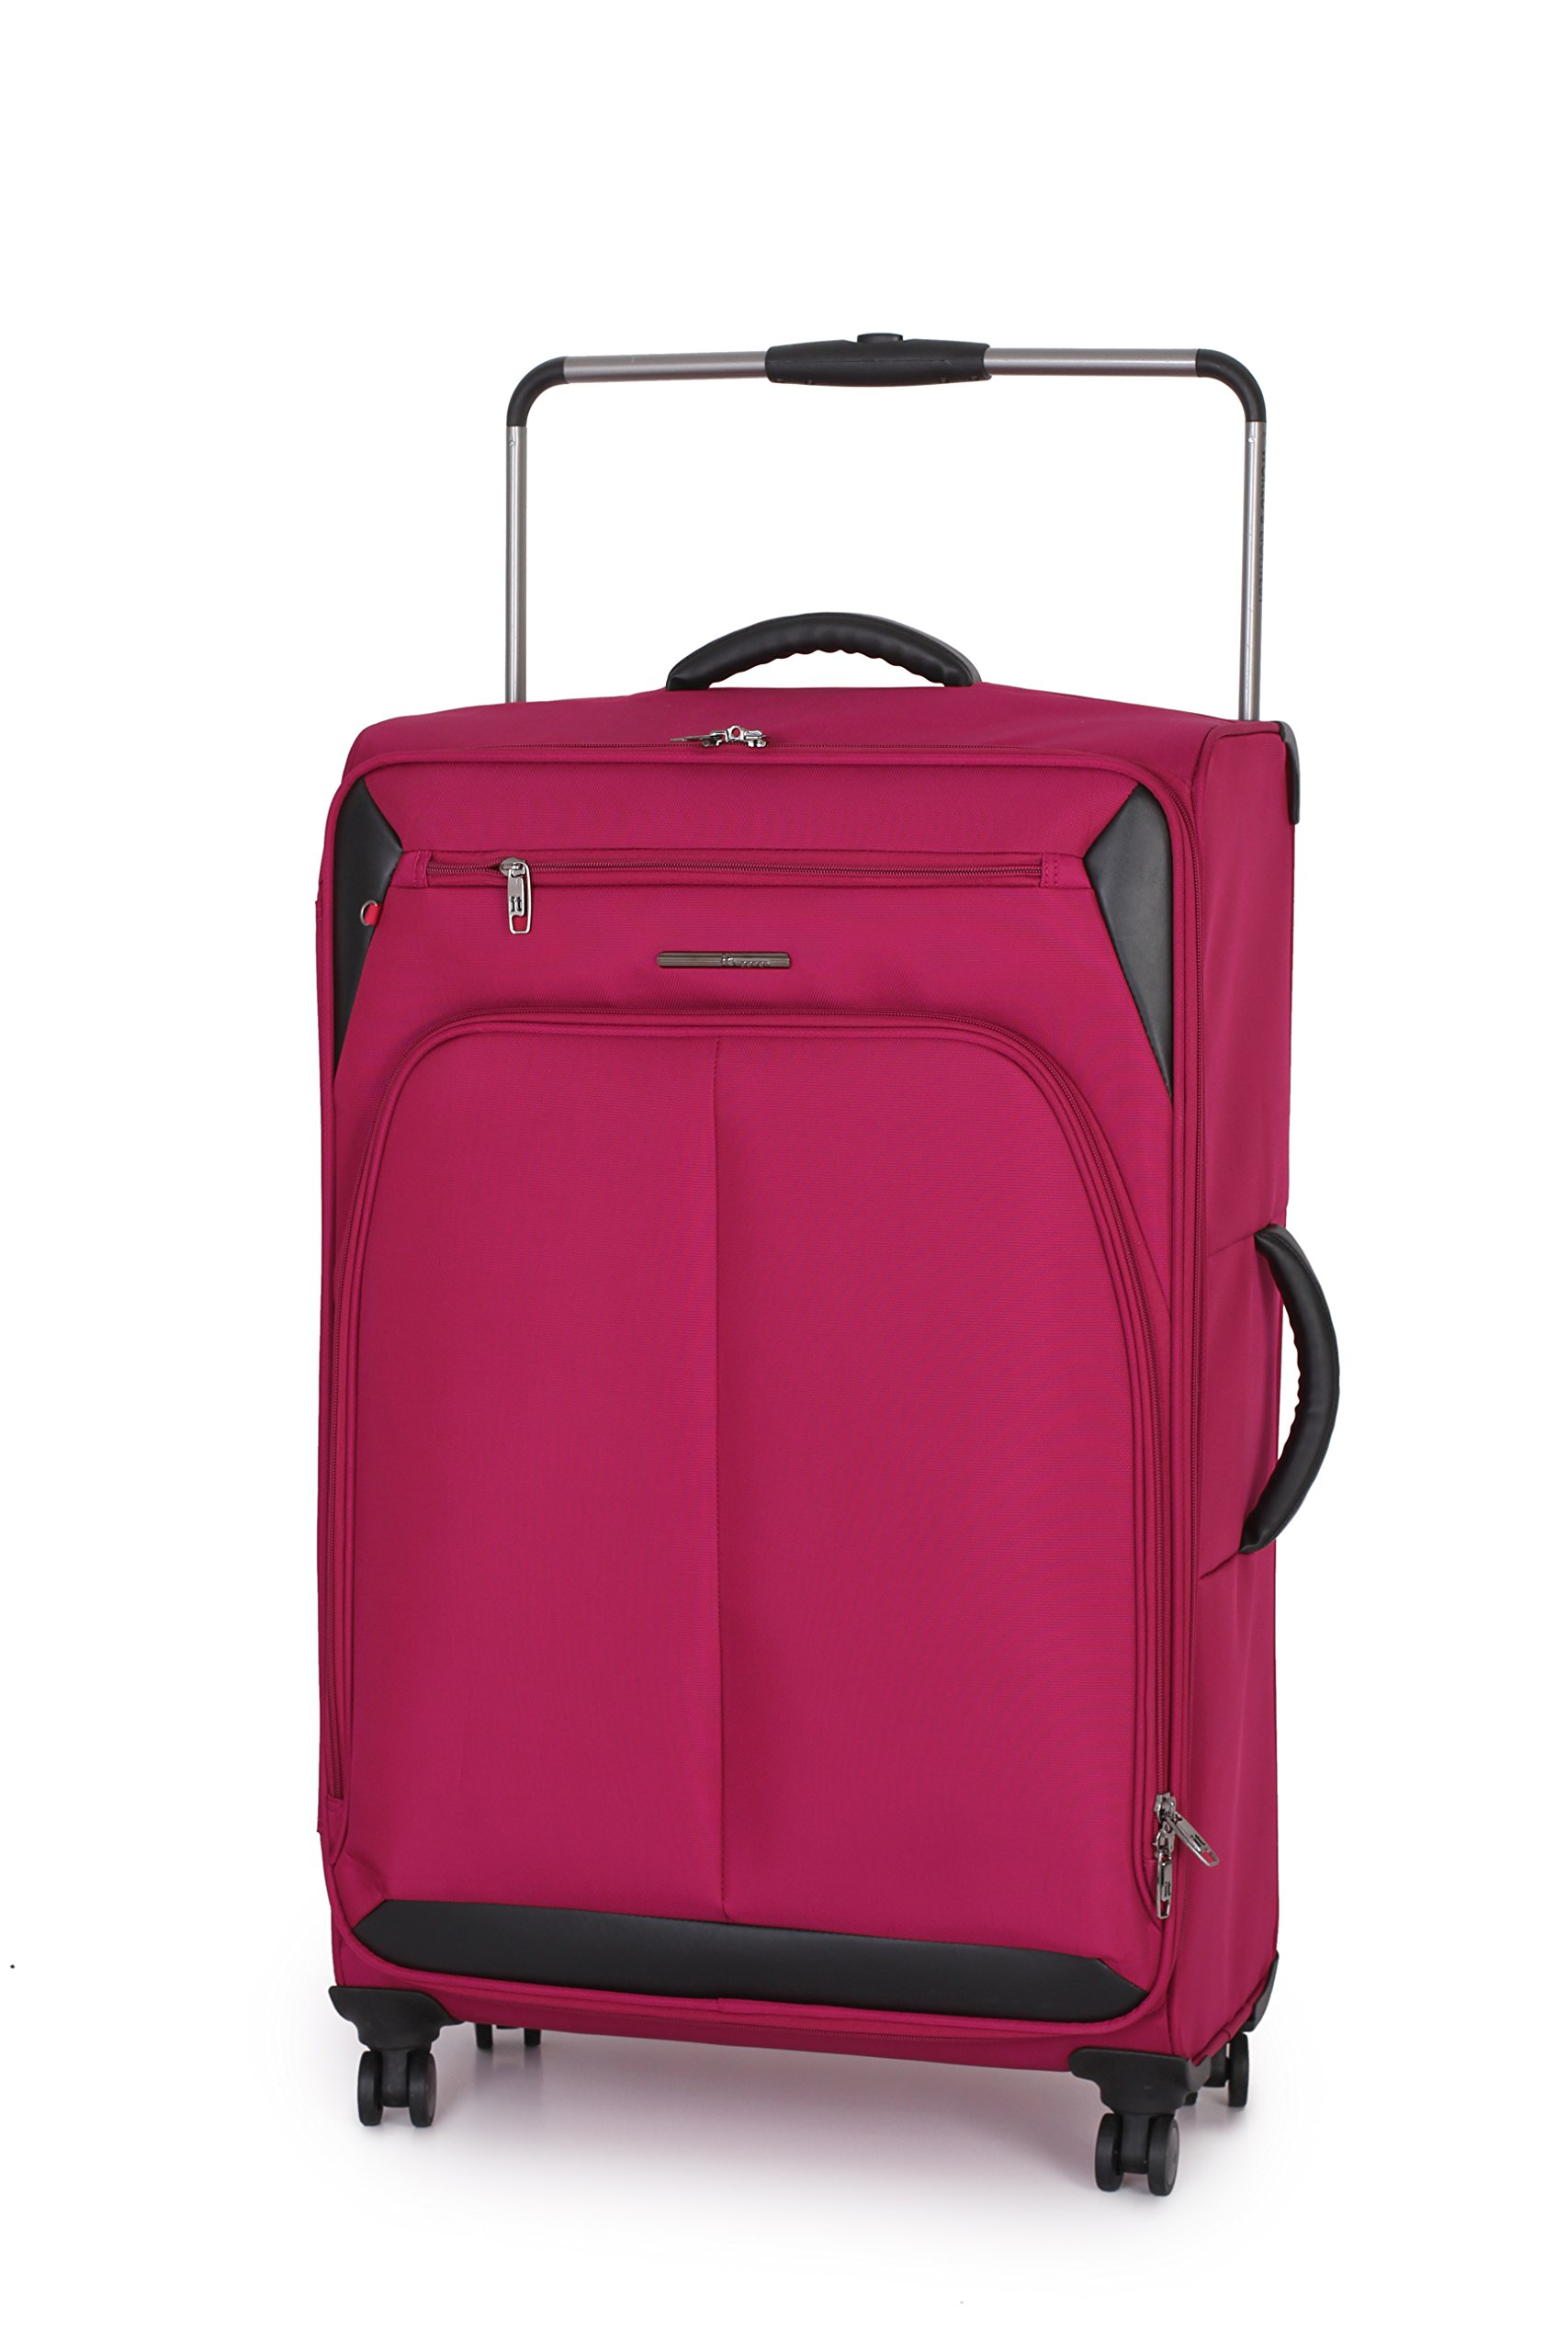 IT Luggage World's Lightest Spinner 31 Inch Packing Case (One size, Pink) by IT Luggage